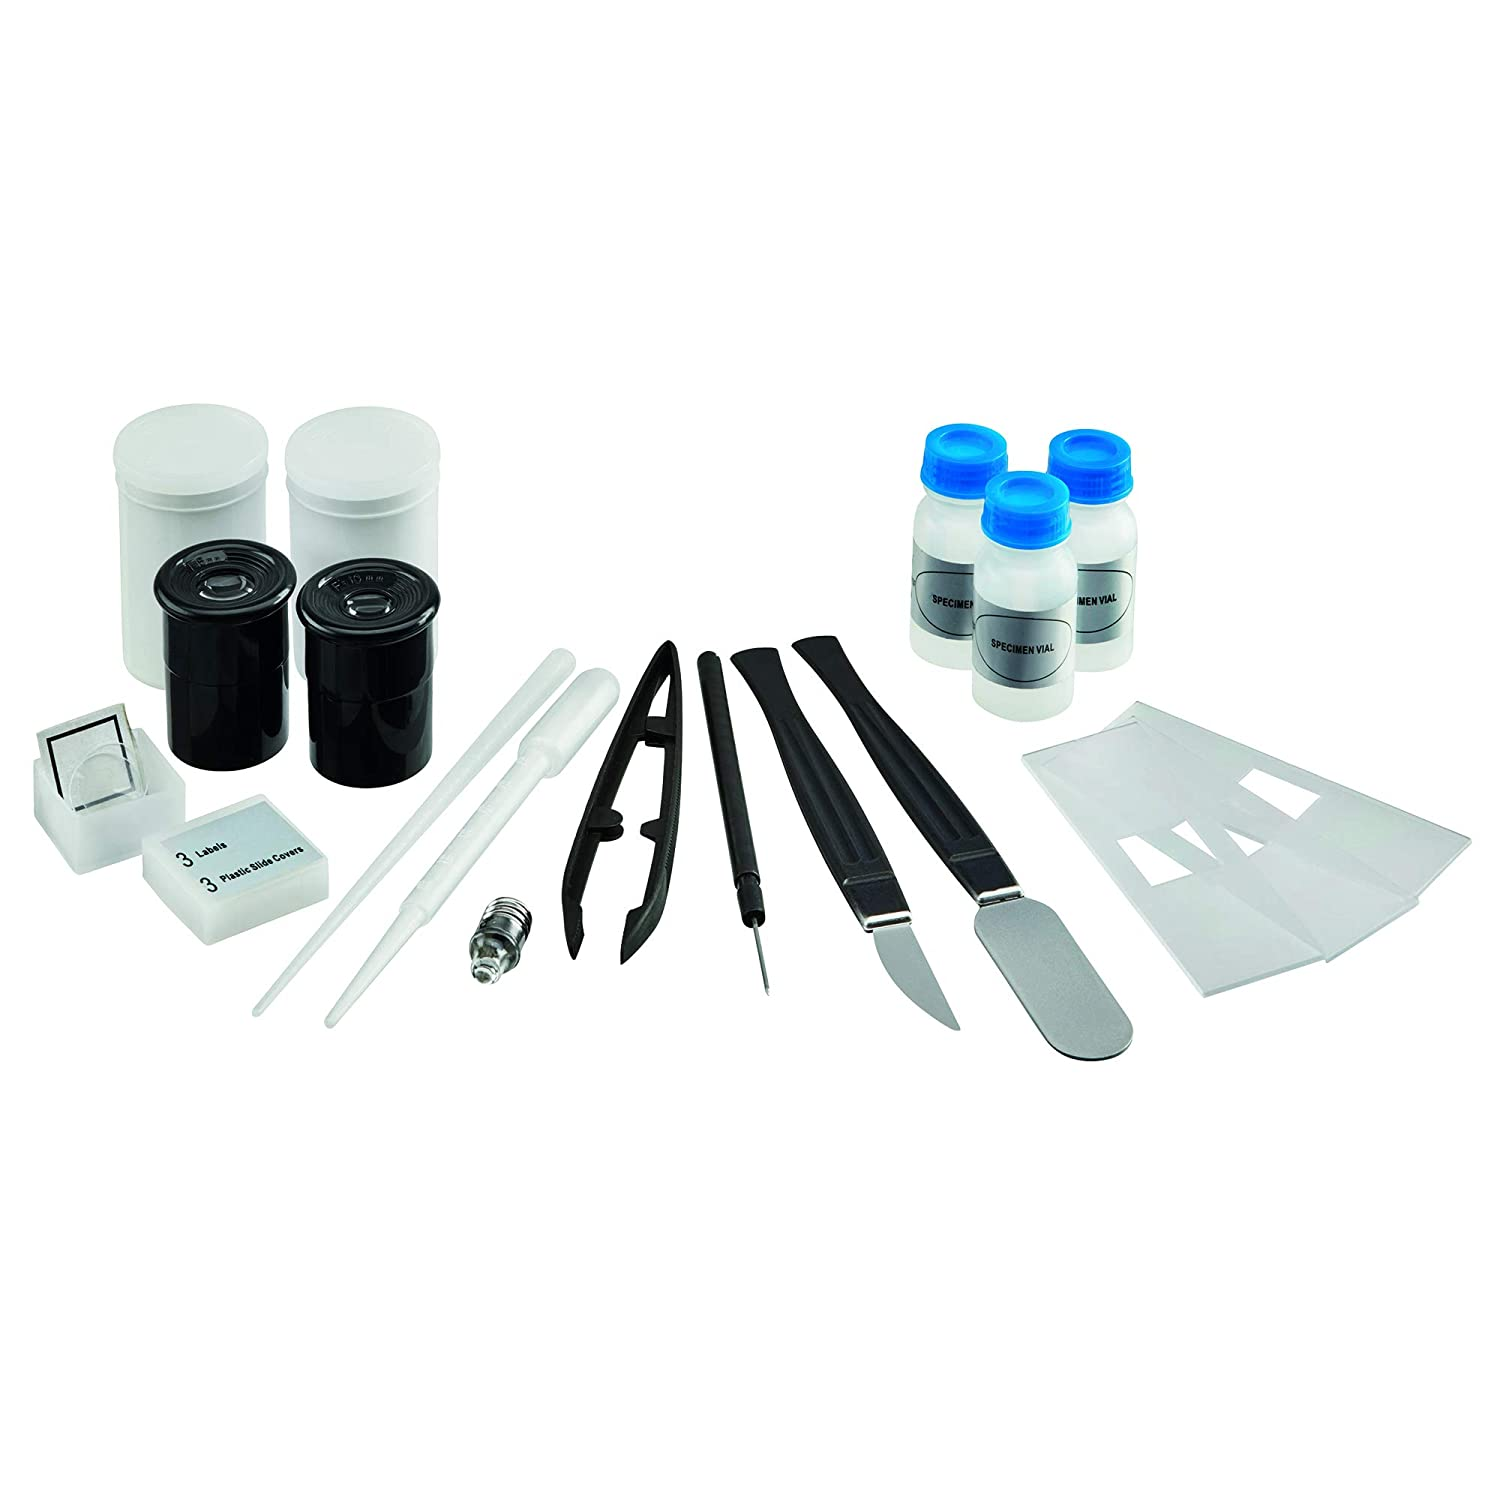 Zennox 60 X 129 Refractor Telescopic And 900x Microscope 150 Set With Accessories Kit